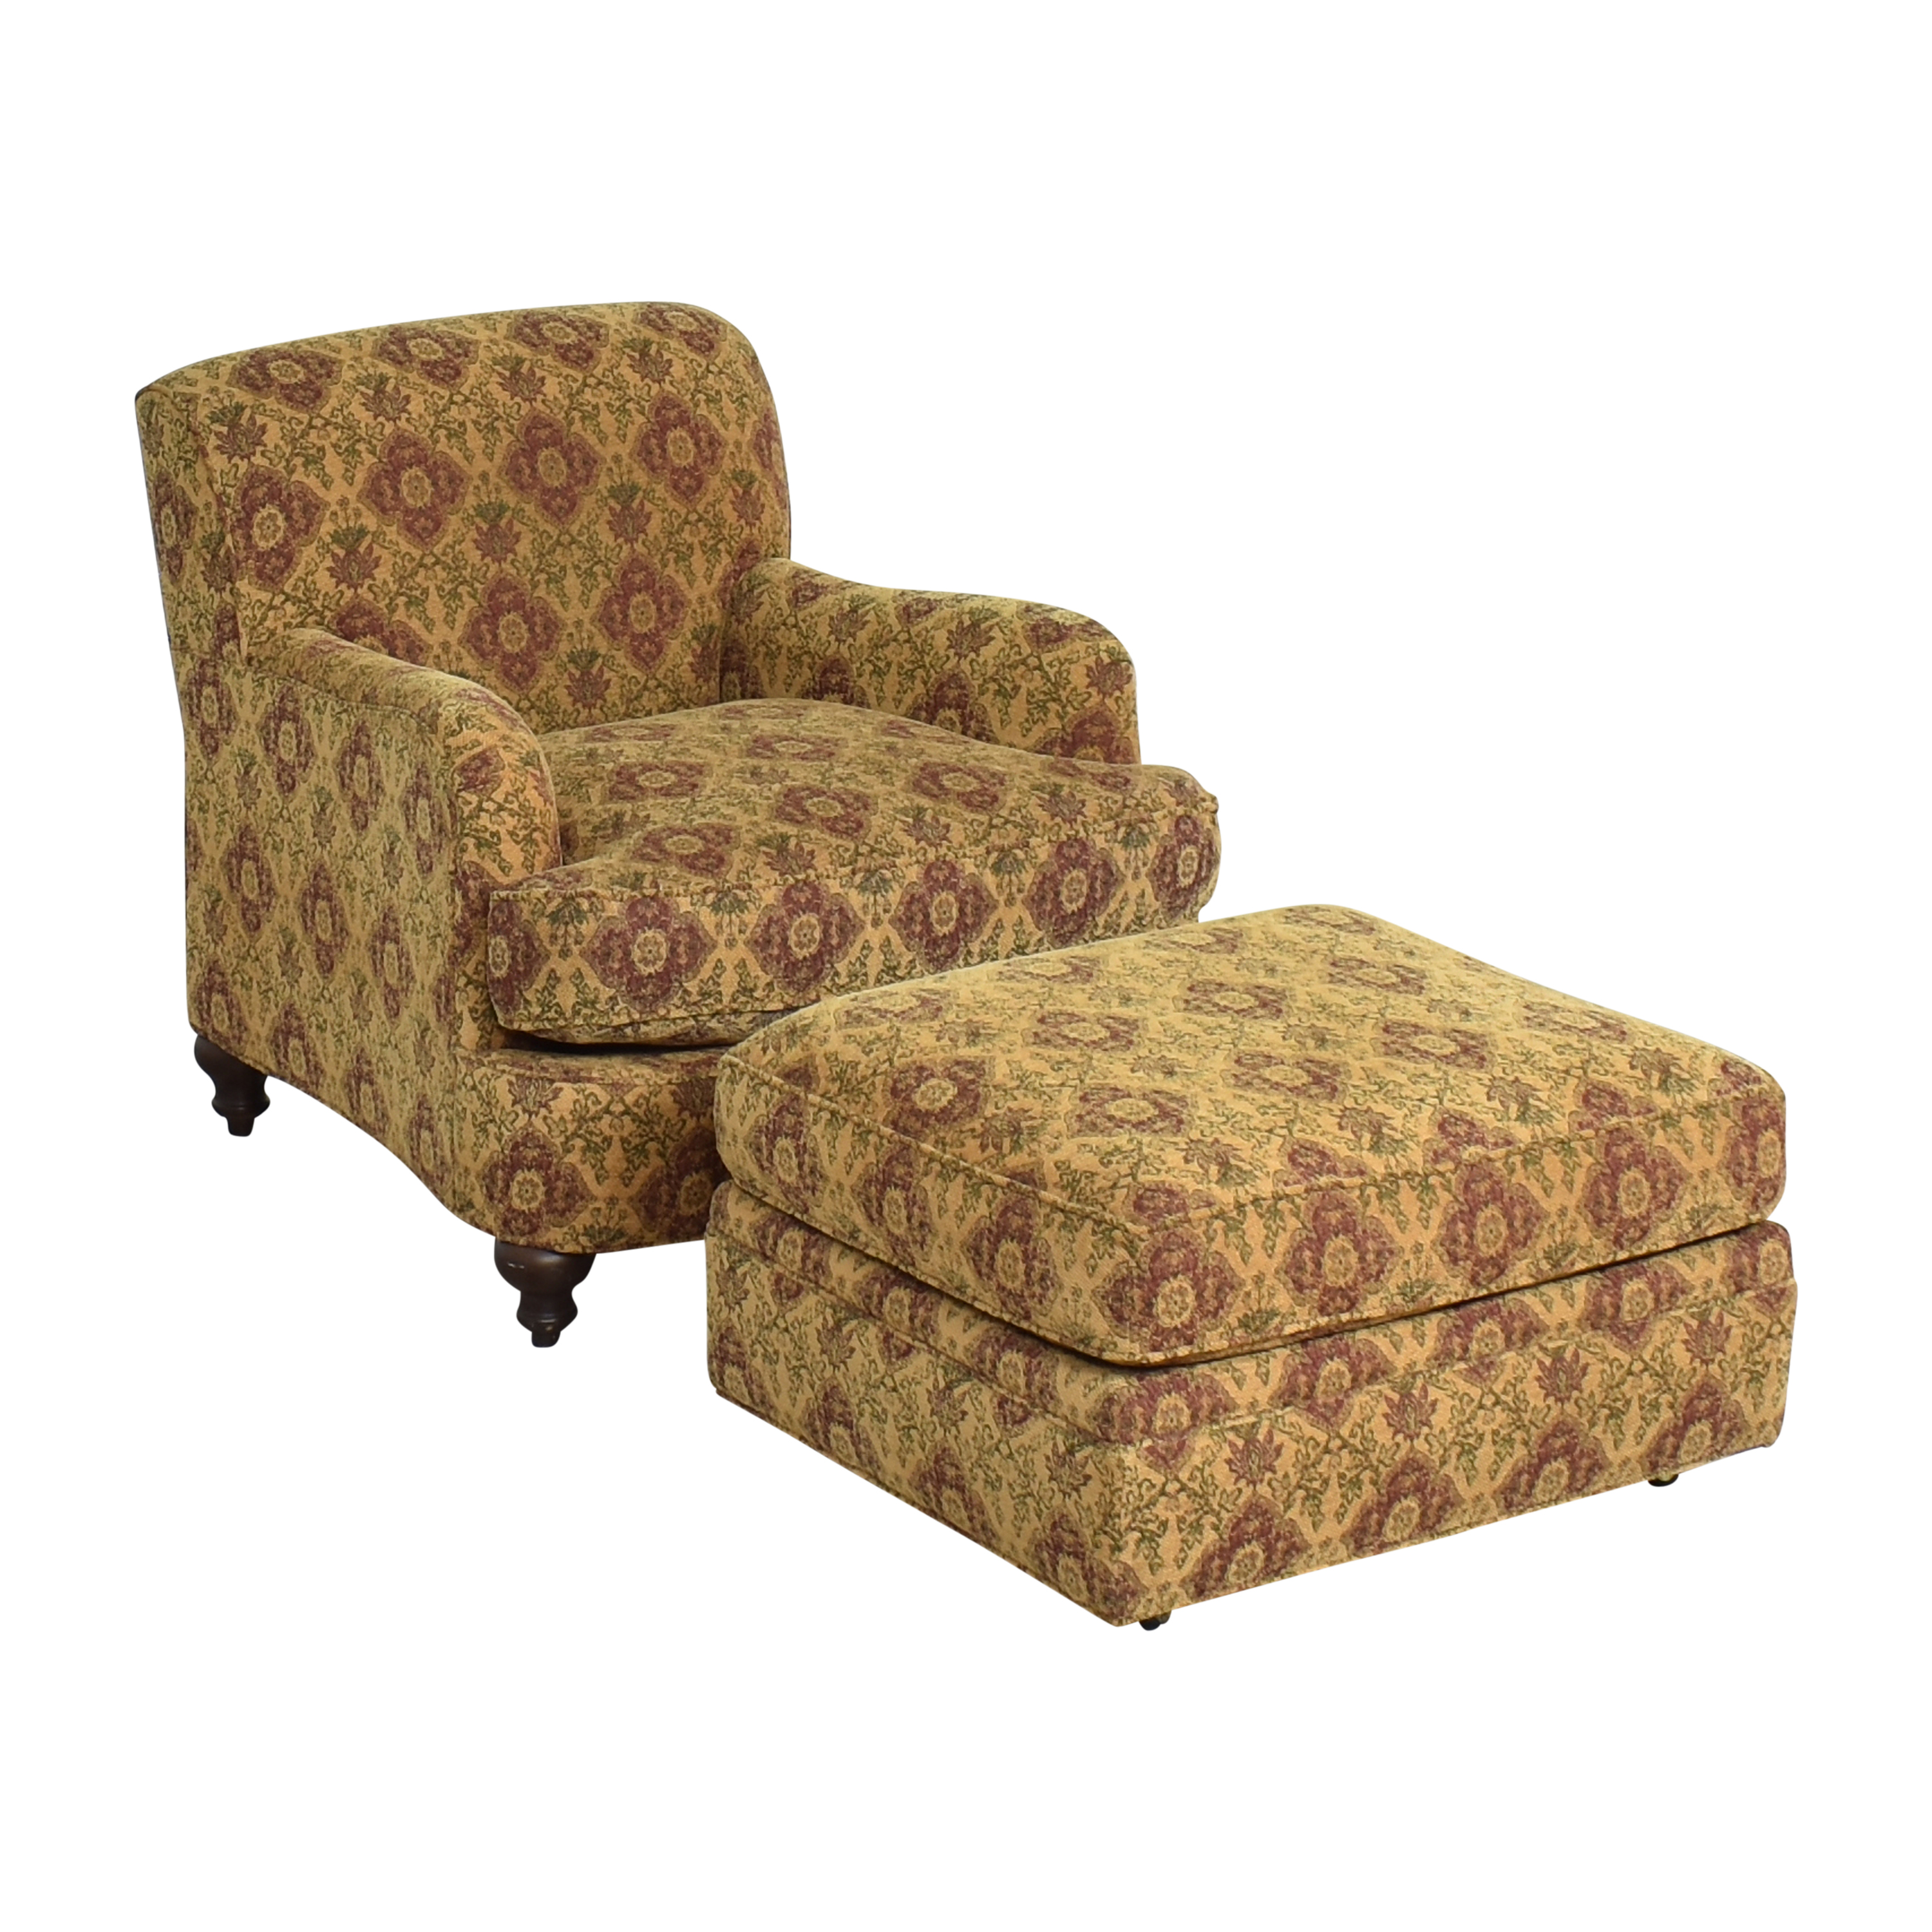 Crate & Barrel Crate & Barrel Upholstered Arm Chair with Ottoman on sale